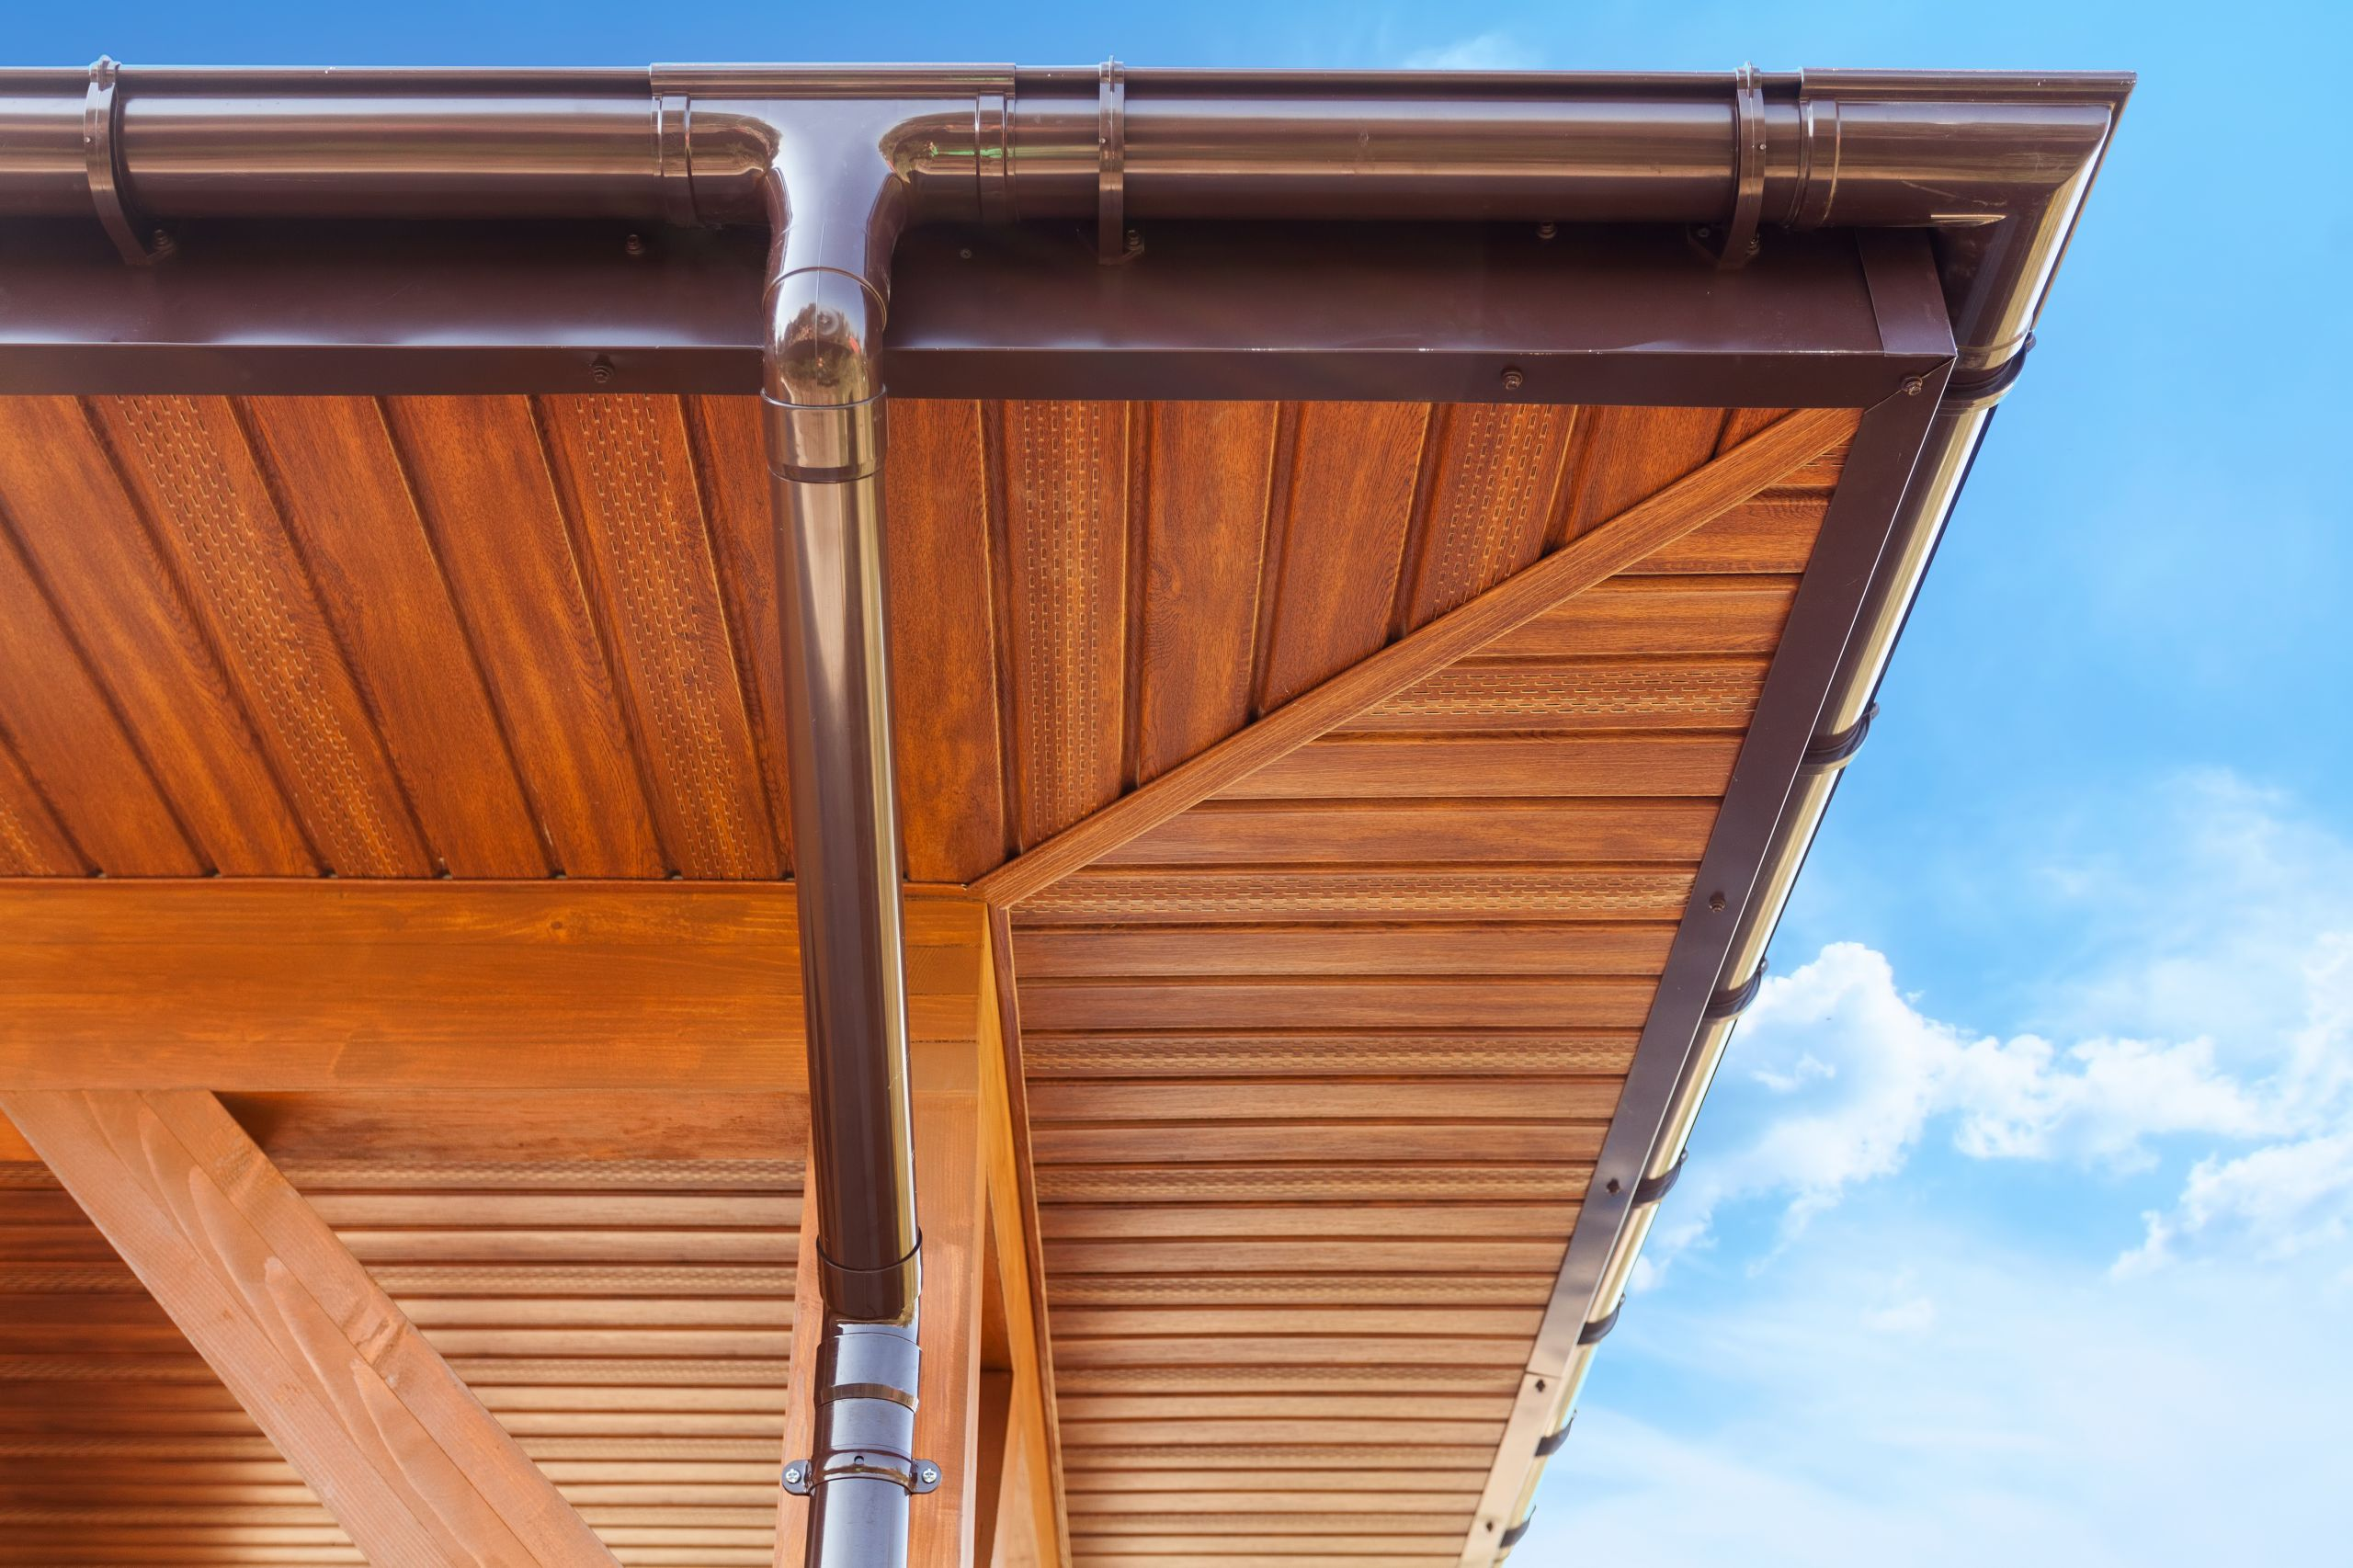 Copper Gutter Installation and Replacement for residential home